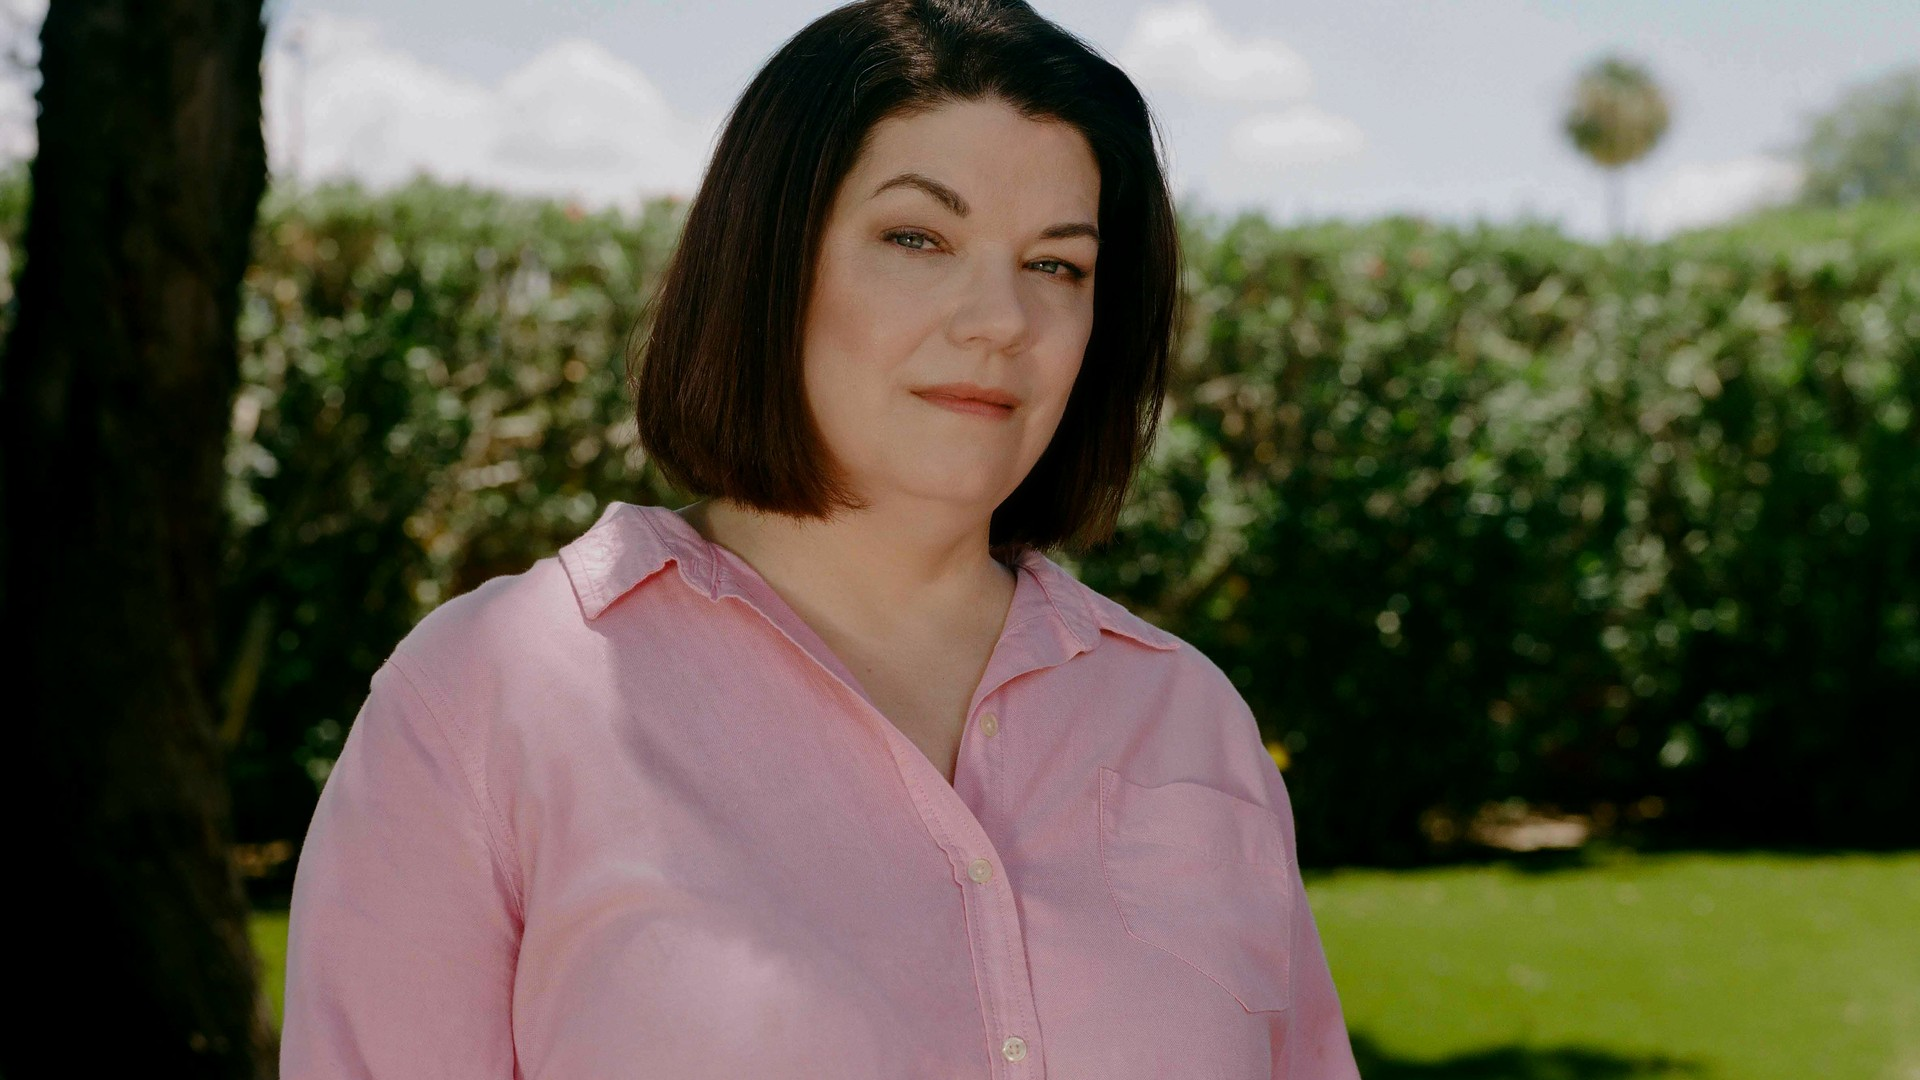 Norma McCorvey, the Jane Roe of Roe v. Wade, Never Had an Abortion. This is Her Daughter